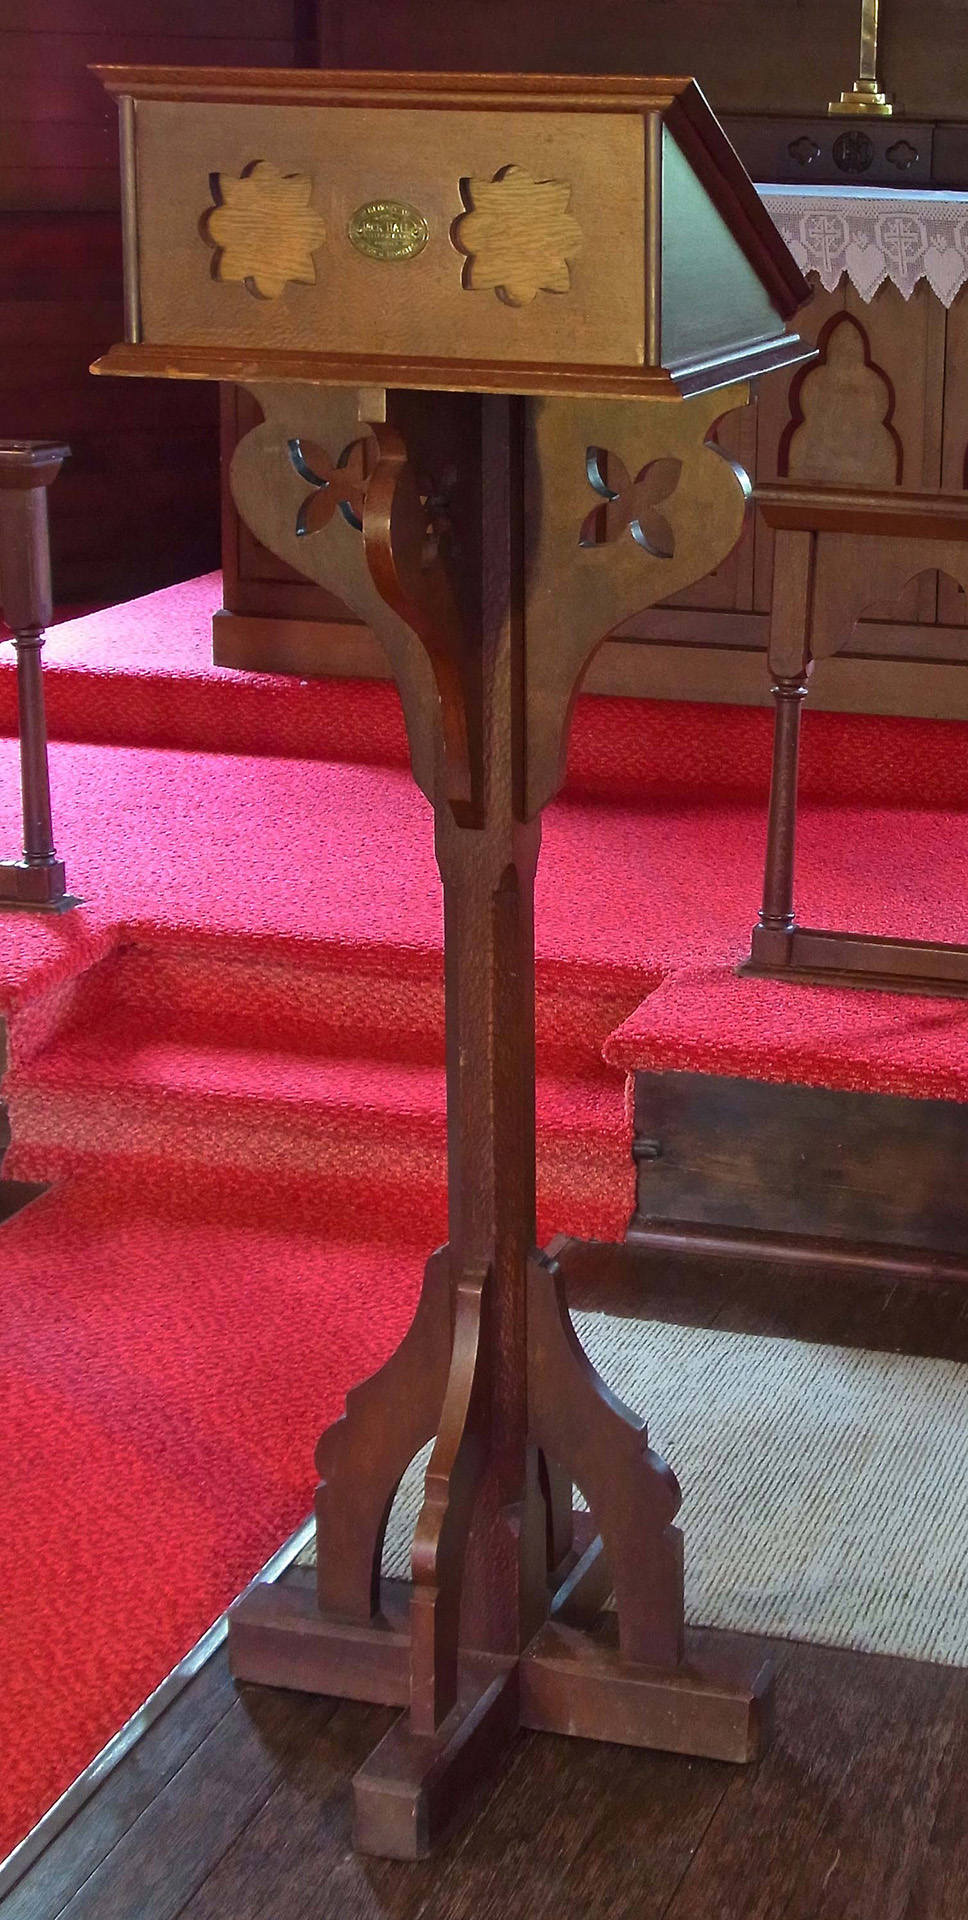 Howard and Arthur Deards Memorial Lectern, part of the Holy Trinity Anglican Church First World War Memorials, Uki